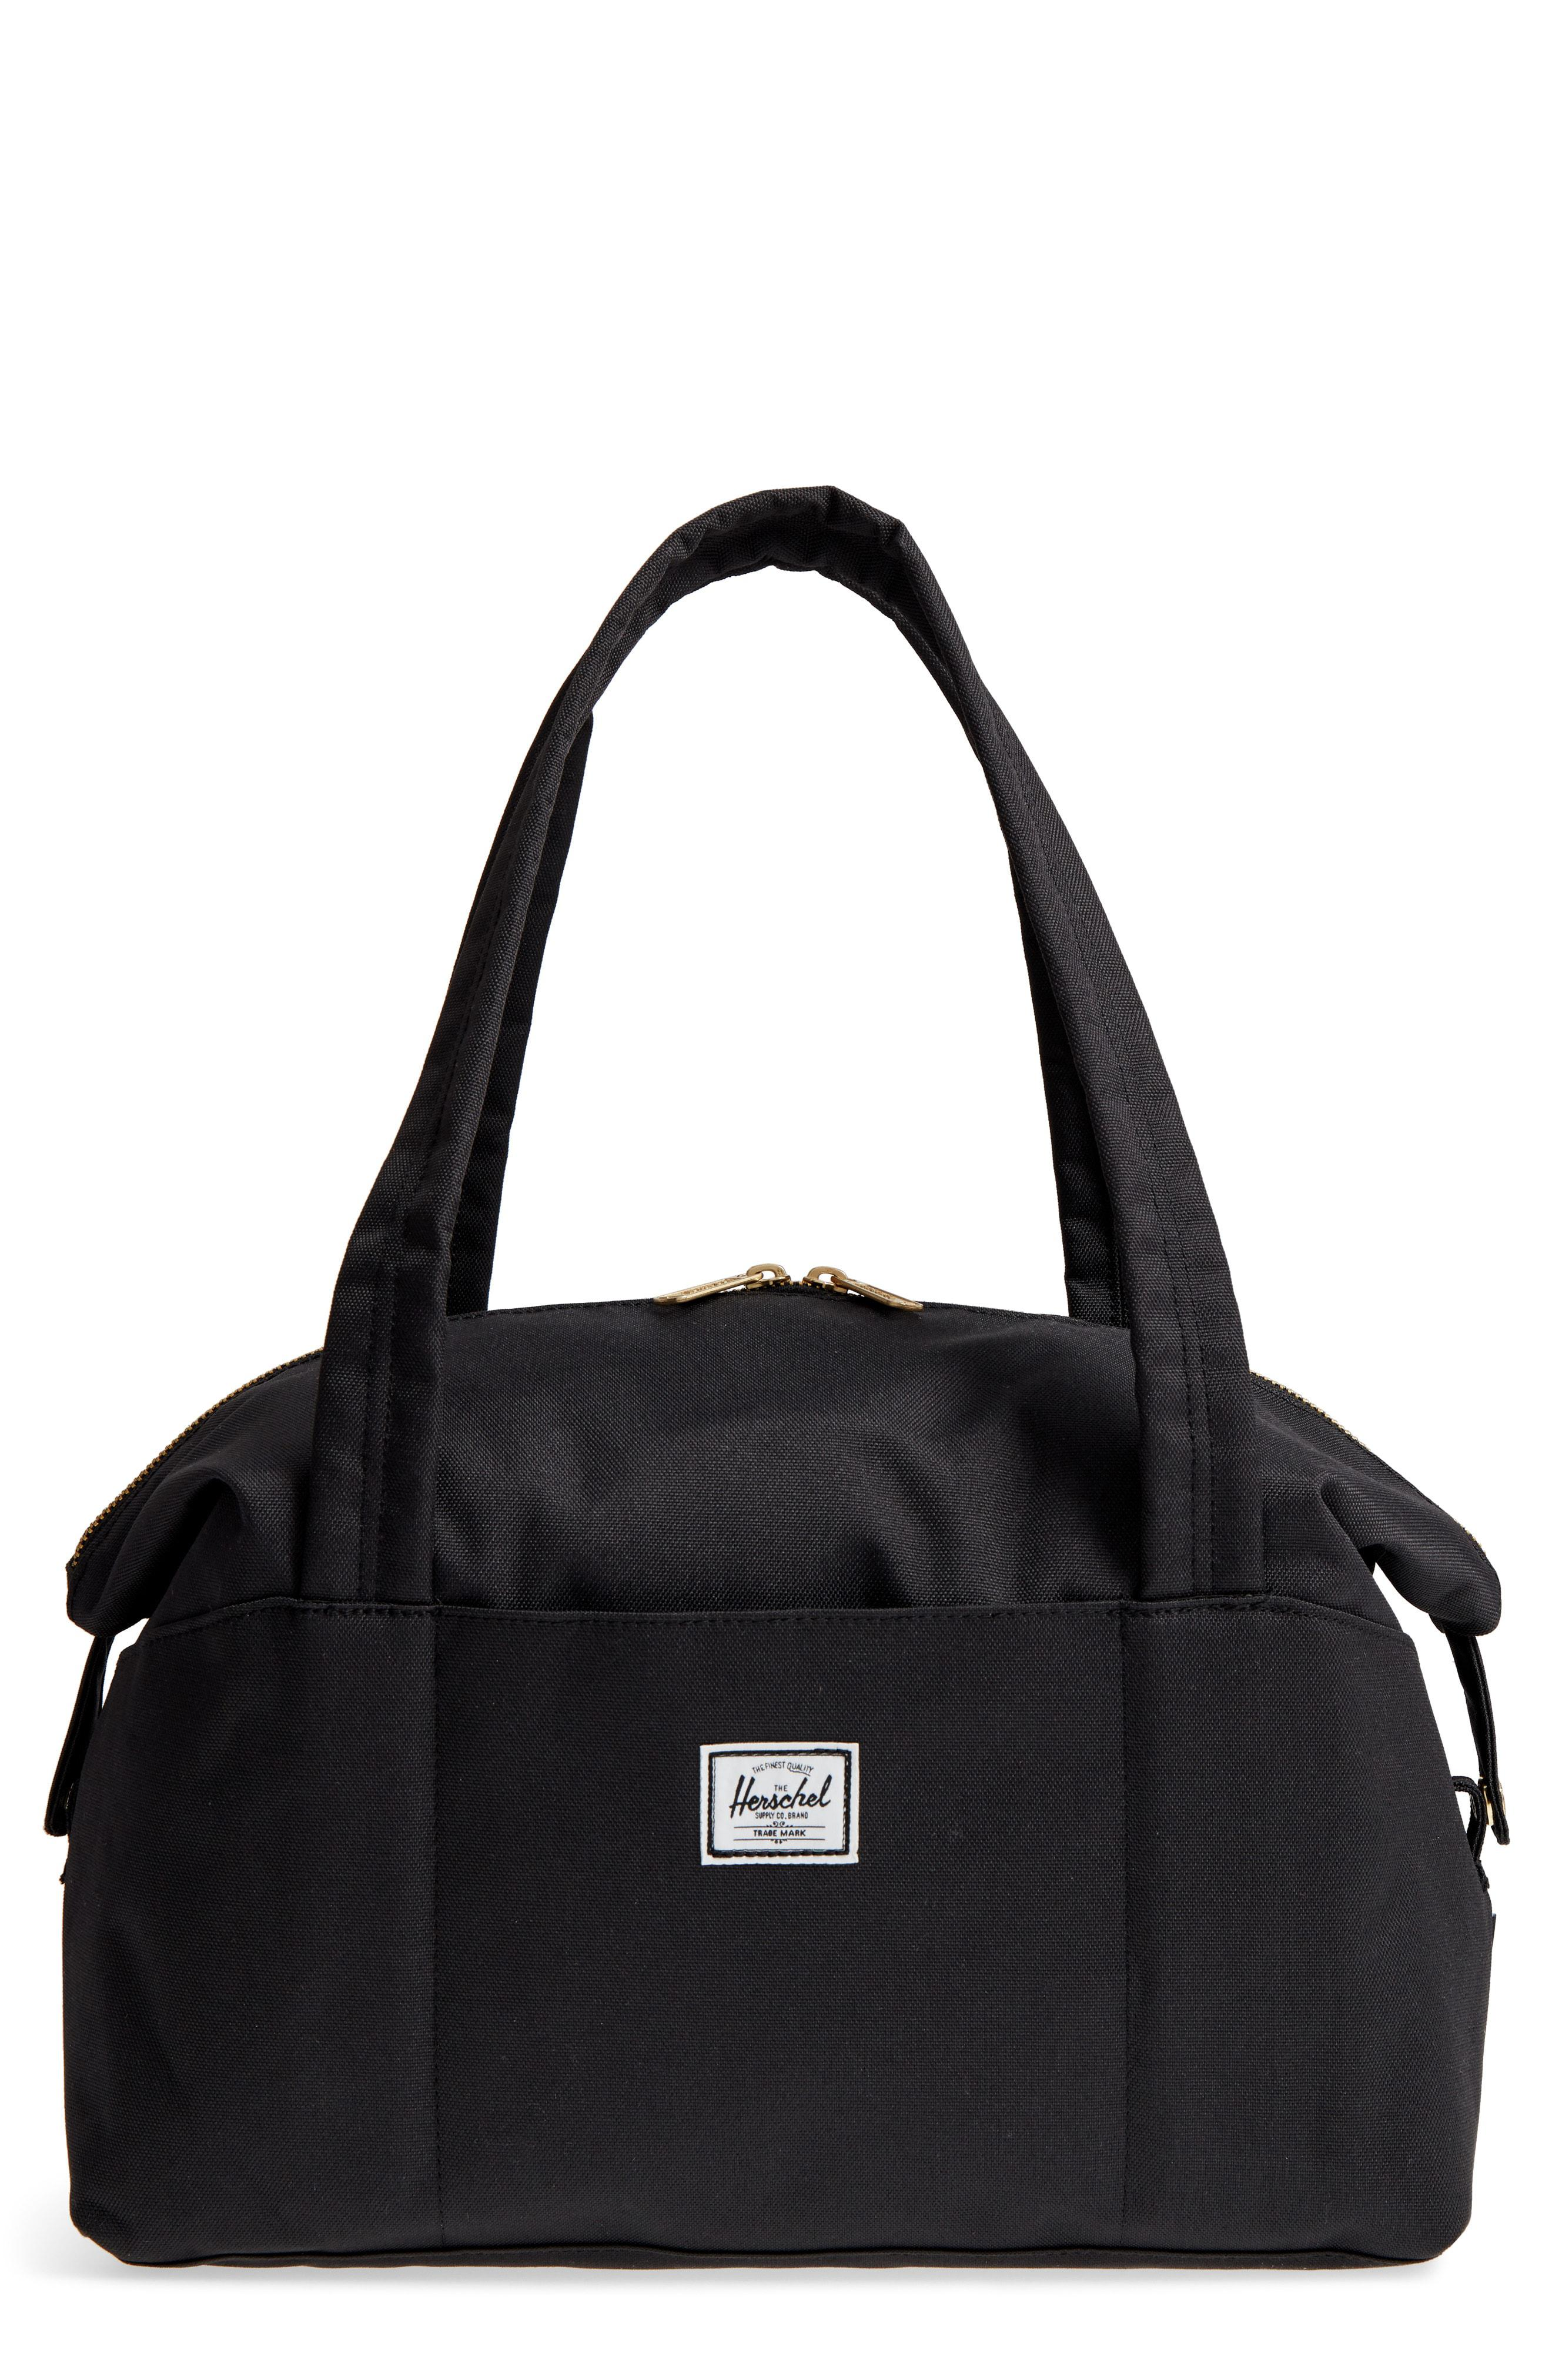 4ed193d69b7d Lyst - Herschel Supply Co. Extra Small Strand Duffel Bag - in Black ...